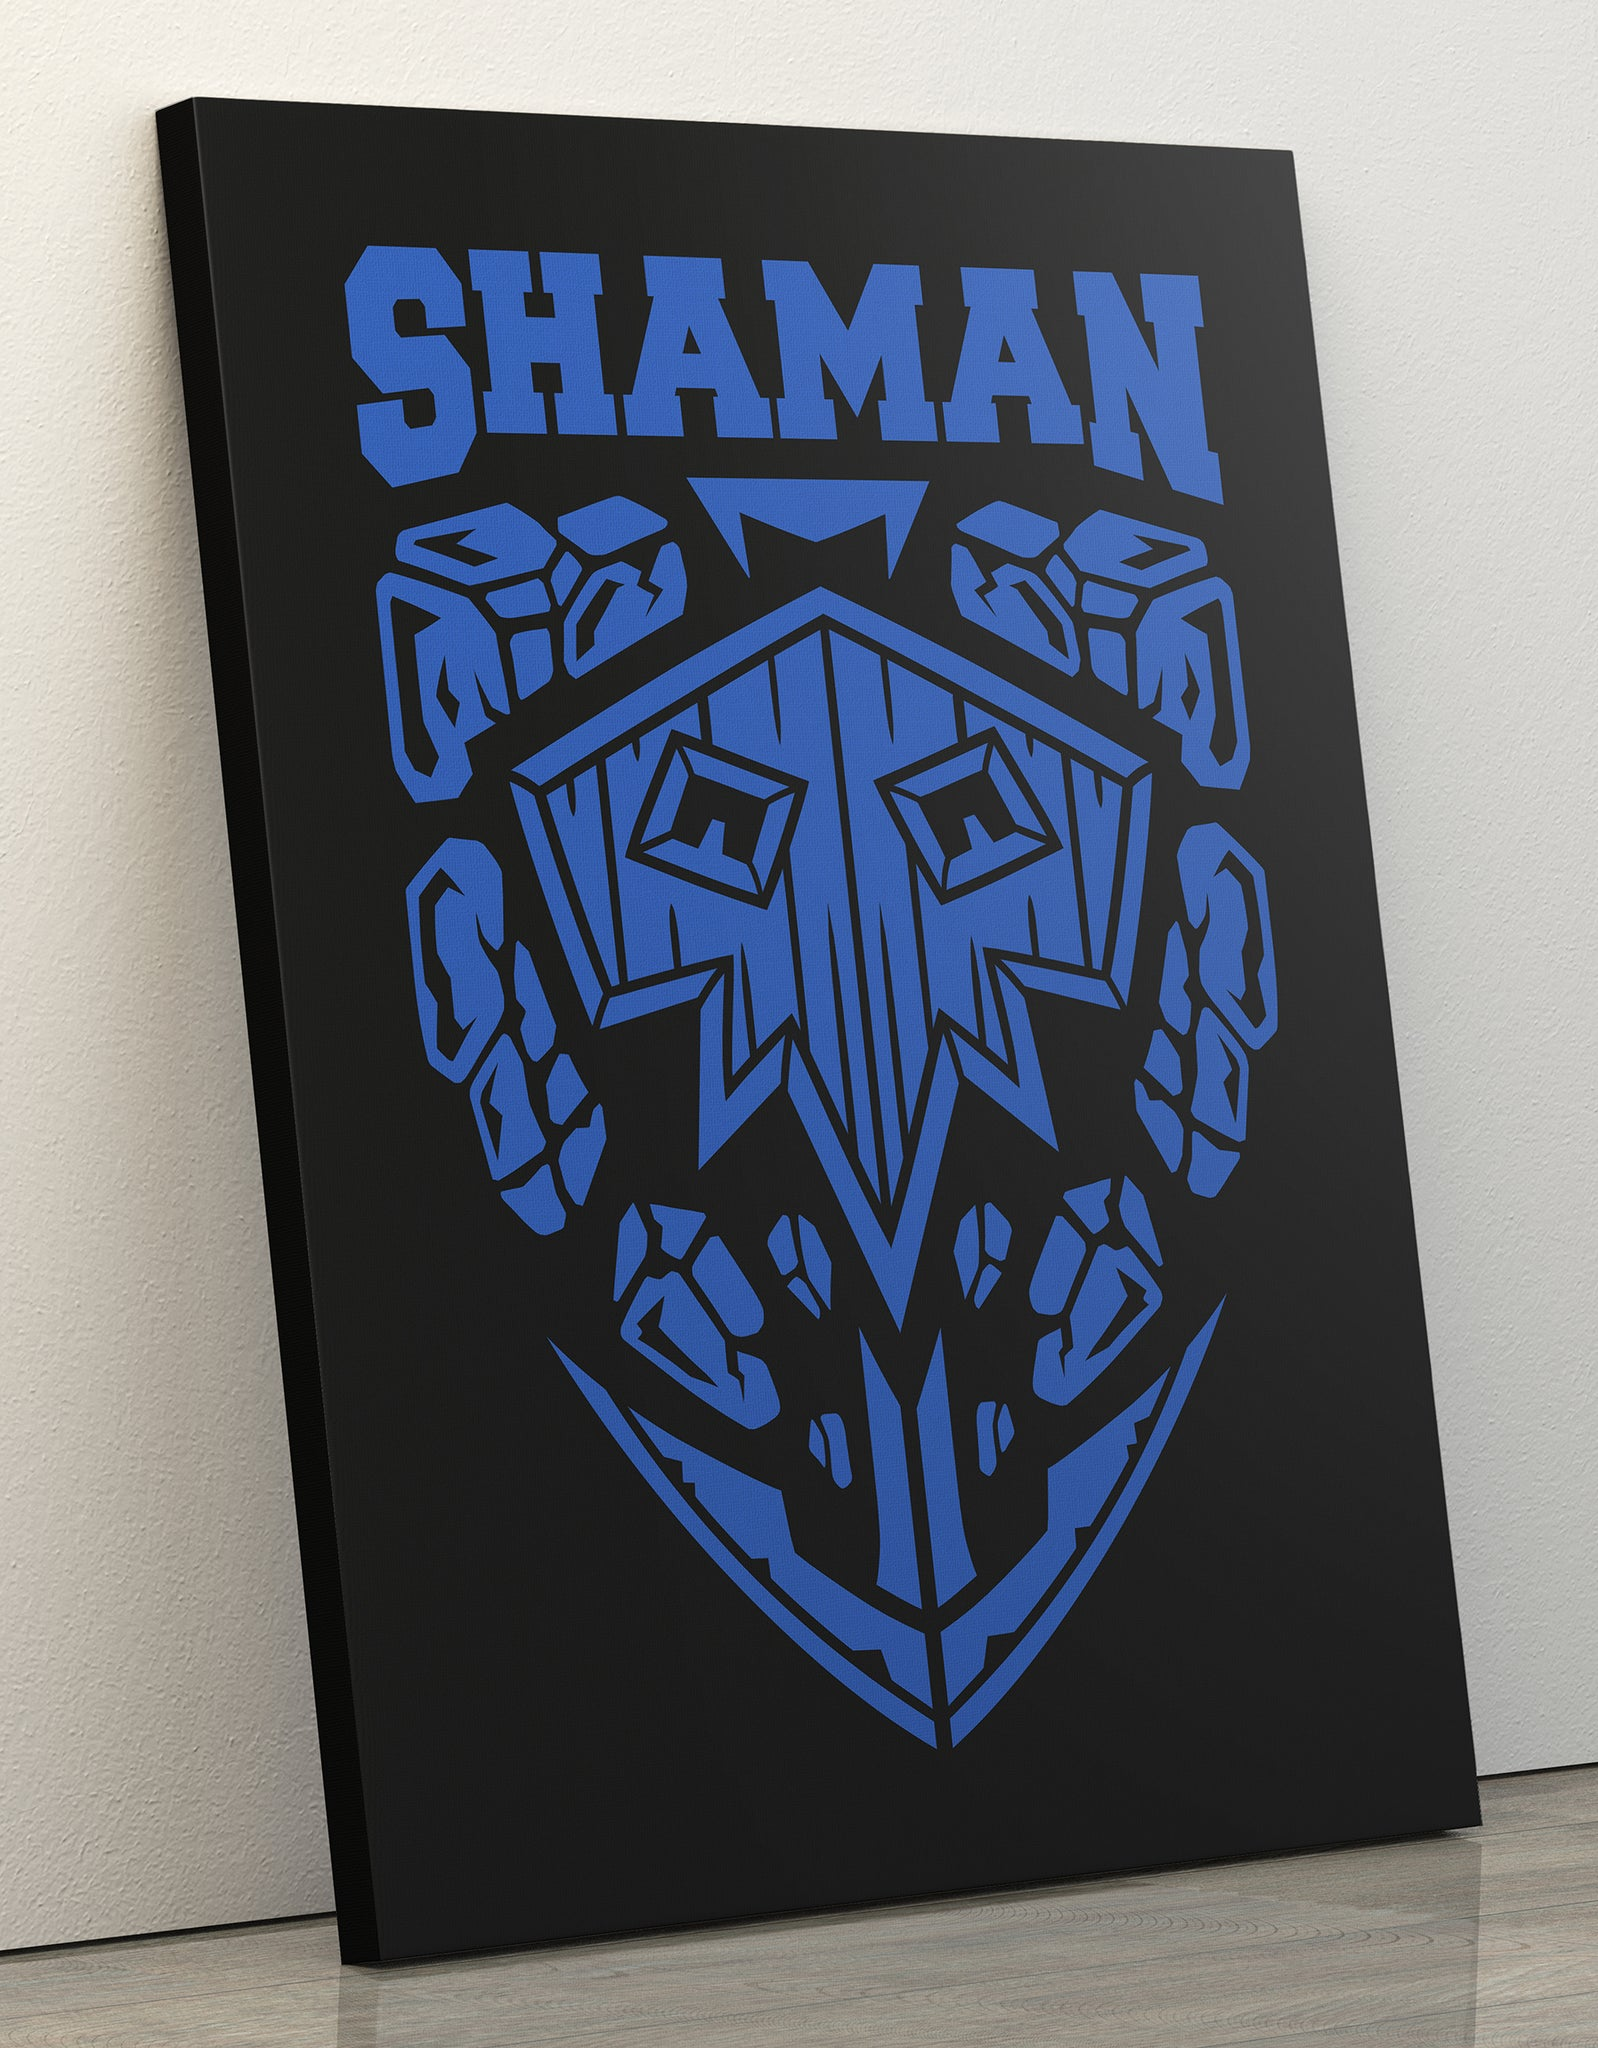 "GIXWEAR Canvas Print 60x80cm ""Shaman"" - MMonster"